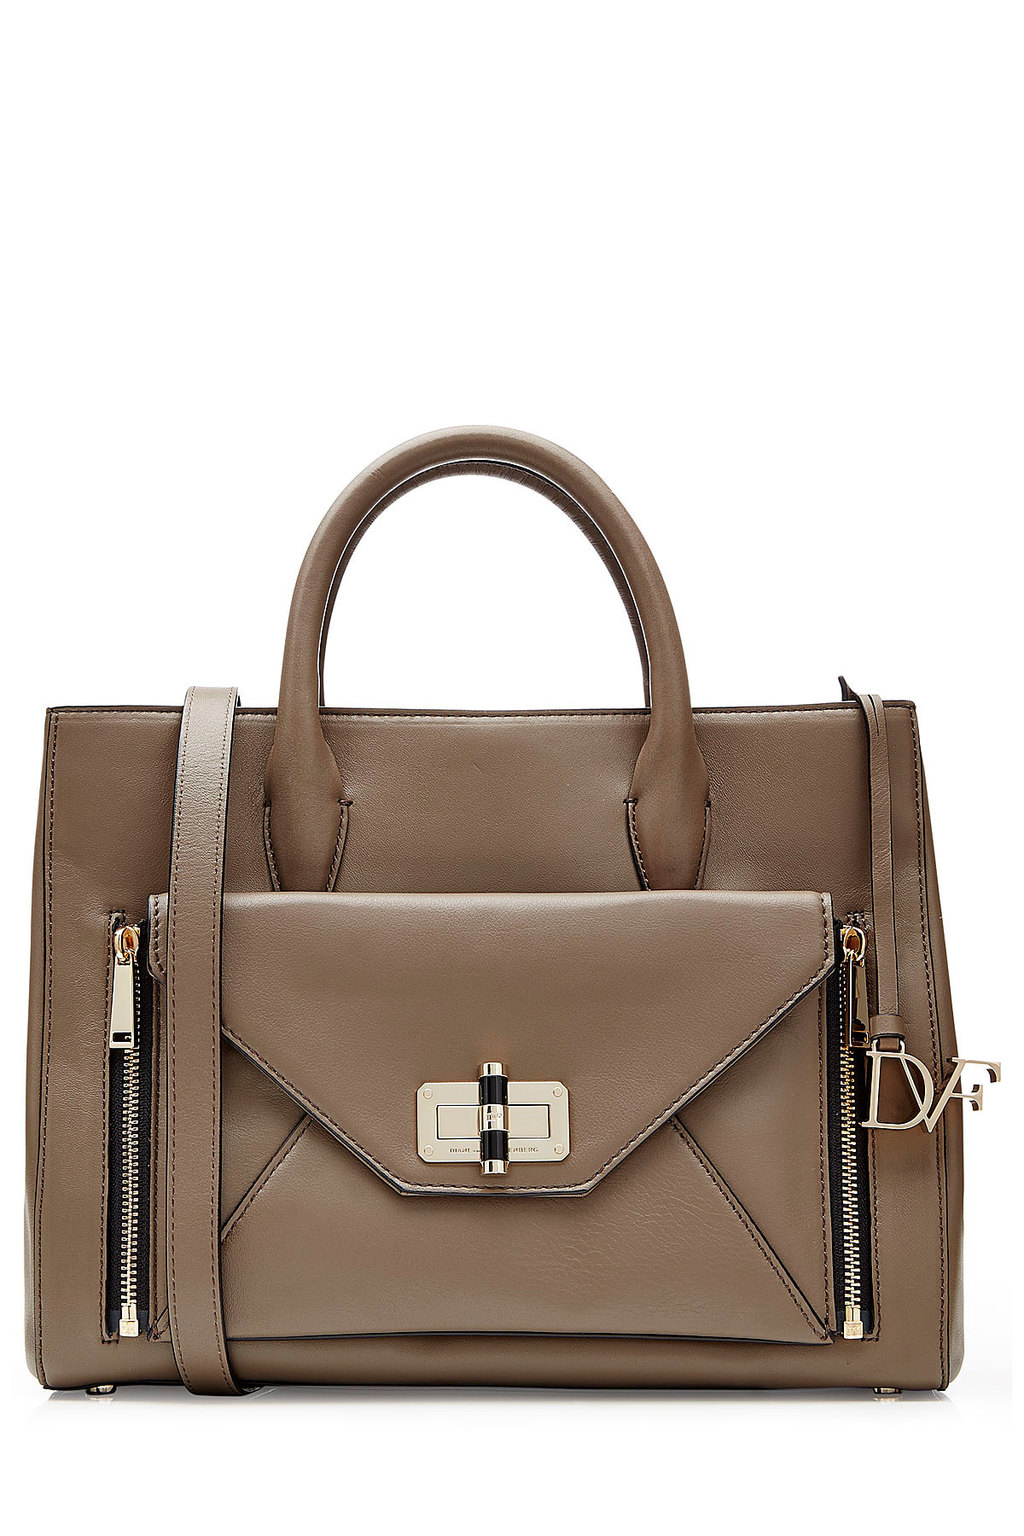 Leather Tote Brown - predominant colour: taupe; occasions: casual, work, creative work; type of pattern: standard; style: tote; length: handle; size: standard; material: leather; pattern: plain; finish: plain; season: a/w 2015